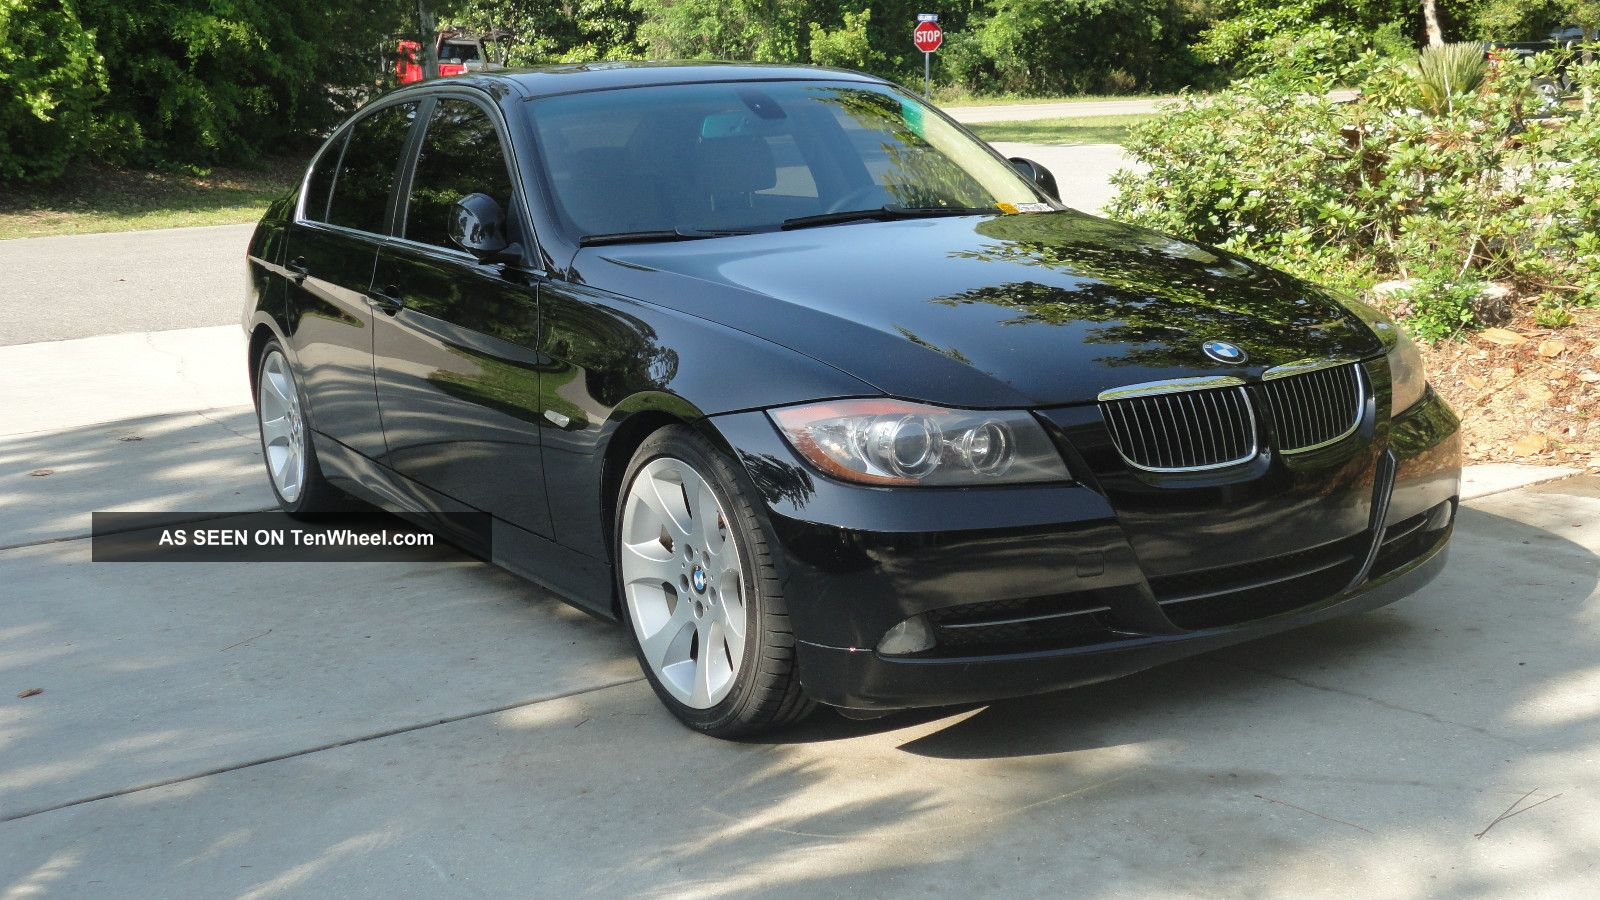 2006 Bmw 330i With Sport And Premium Package,  Black 3-Series photo